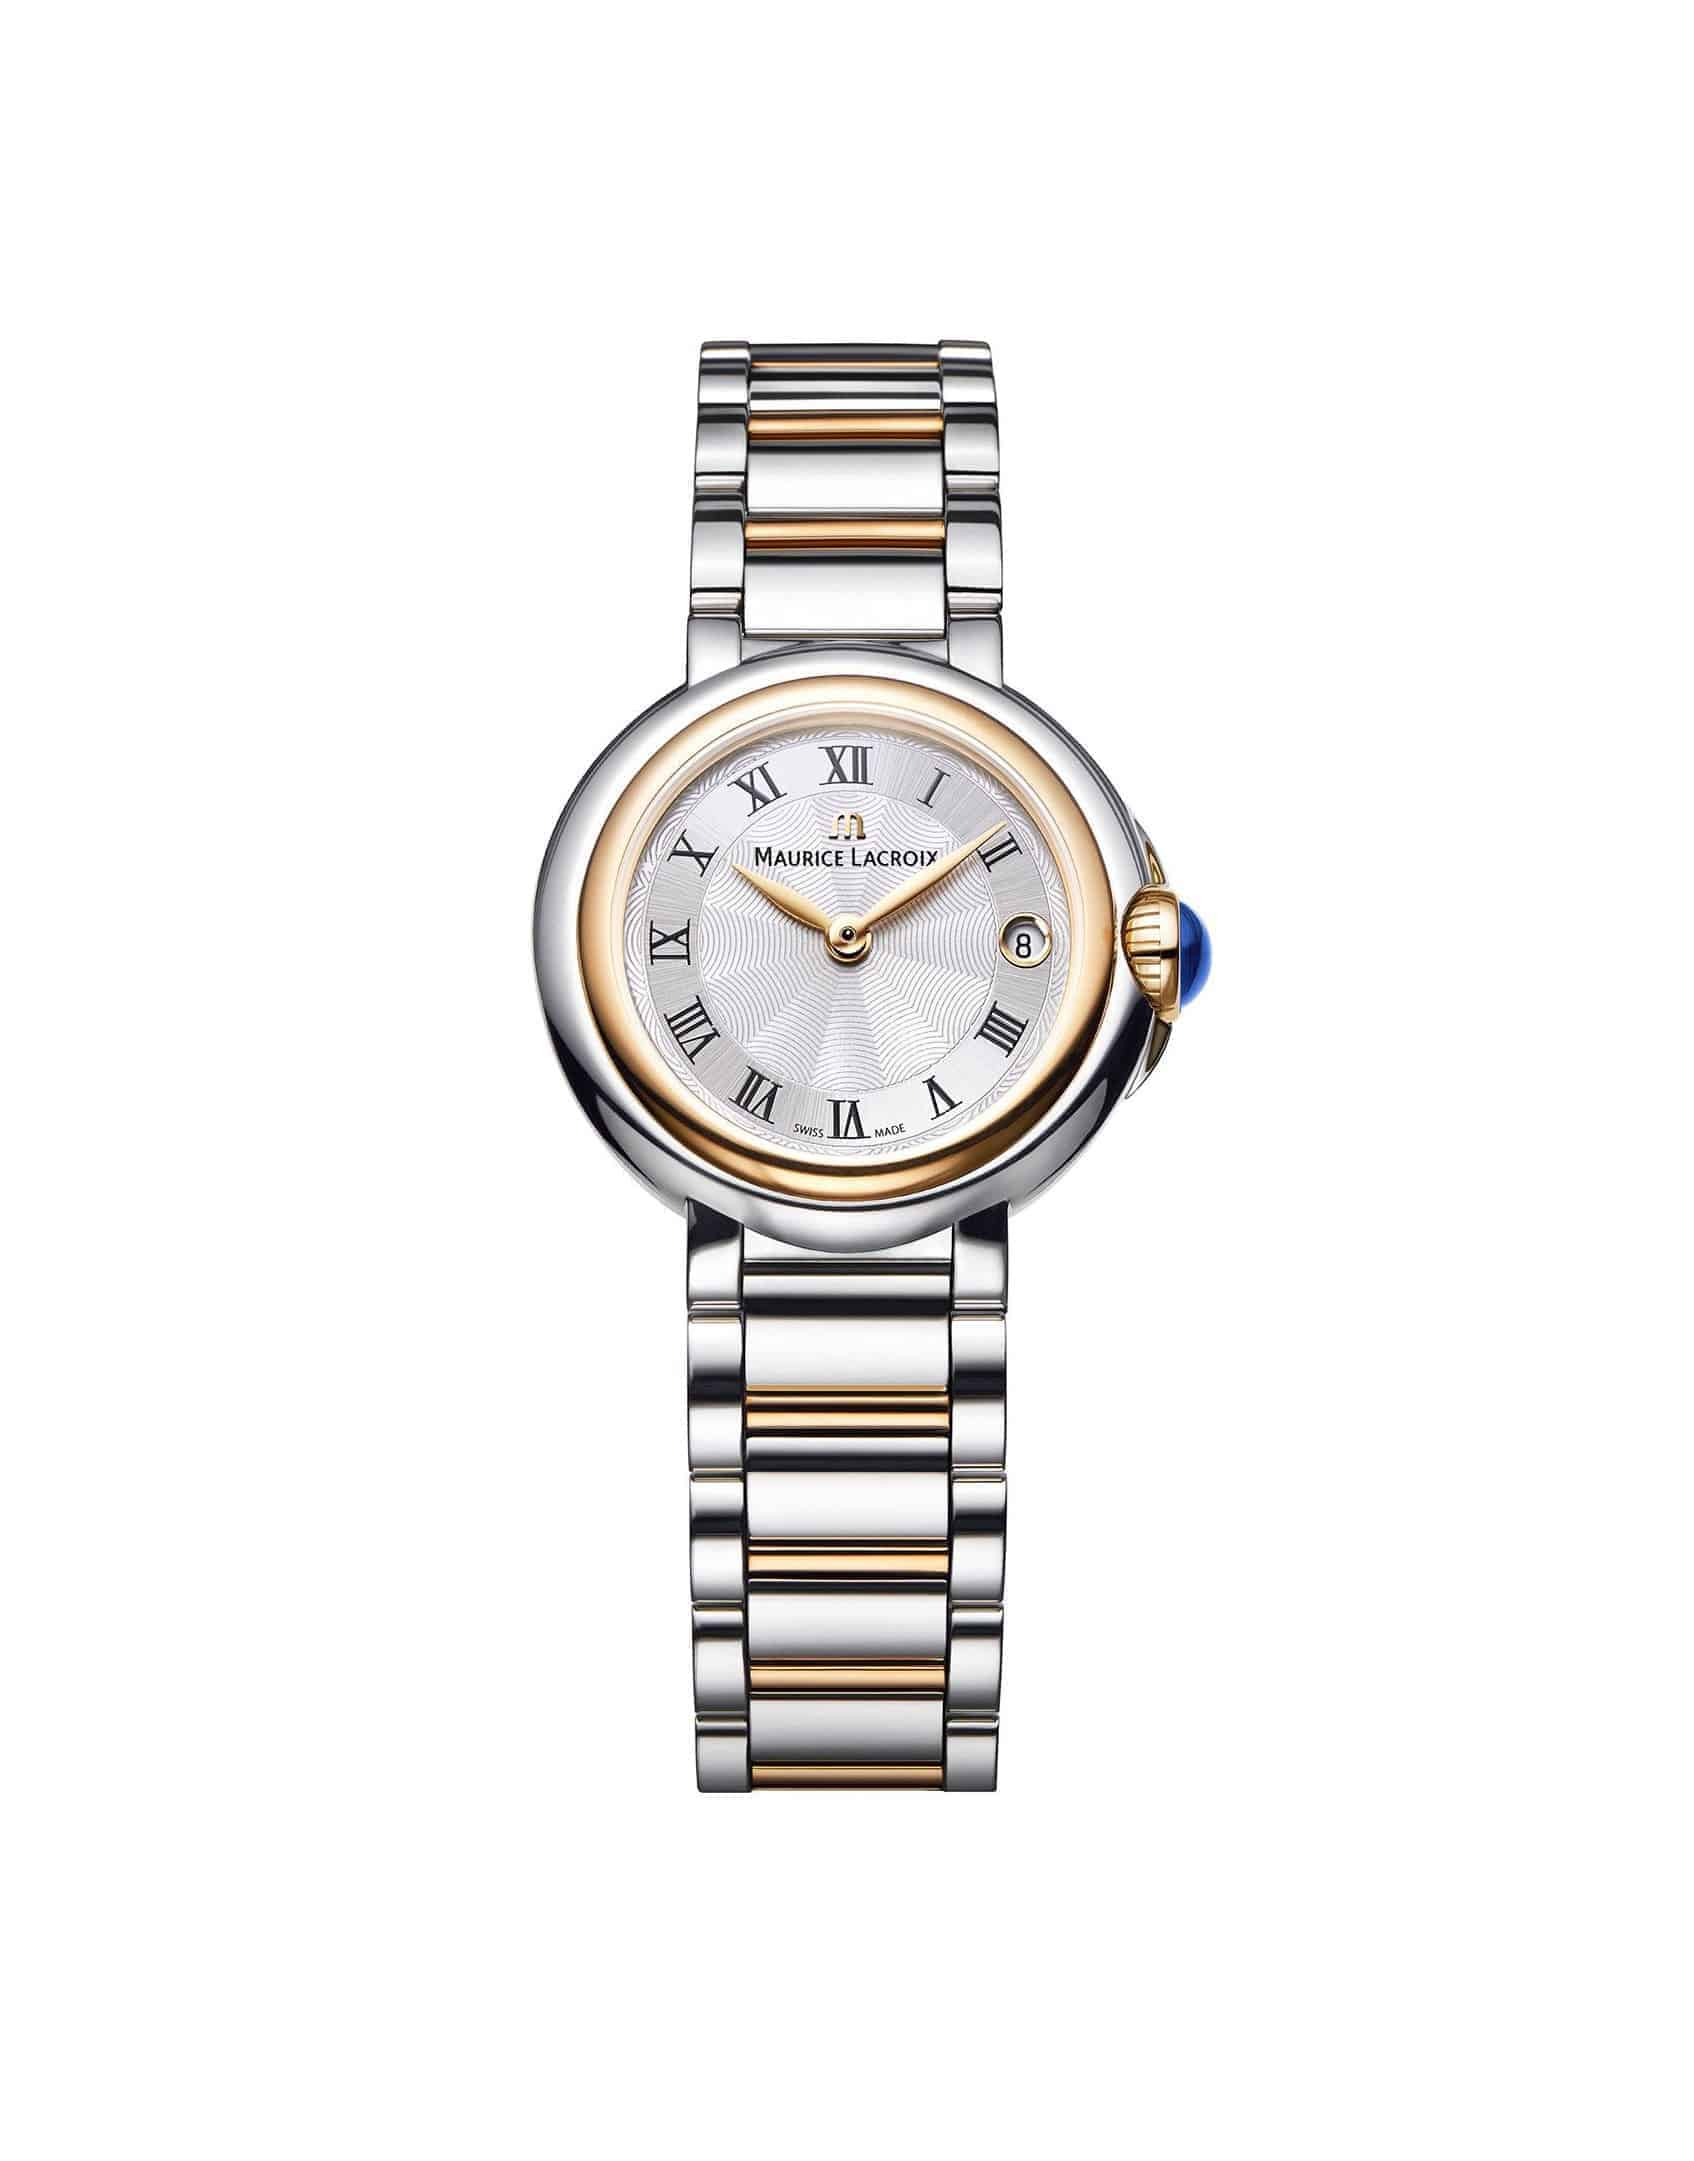 Maurice Lacroix FIABA Watch FA1003-PVP13-110-1_0